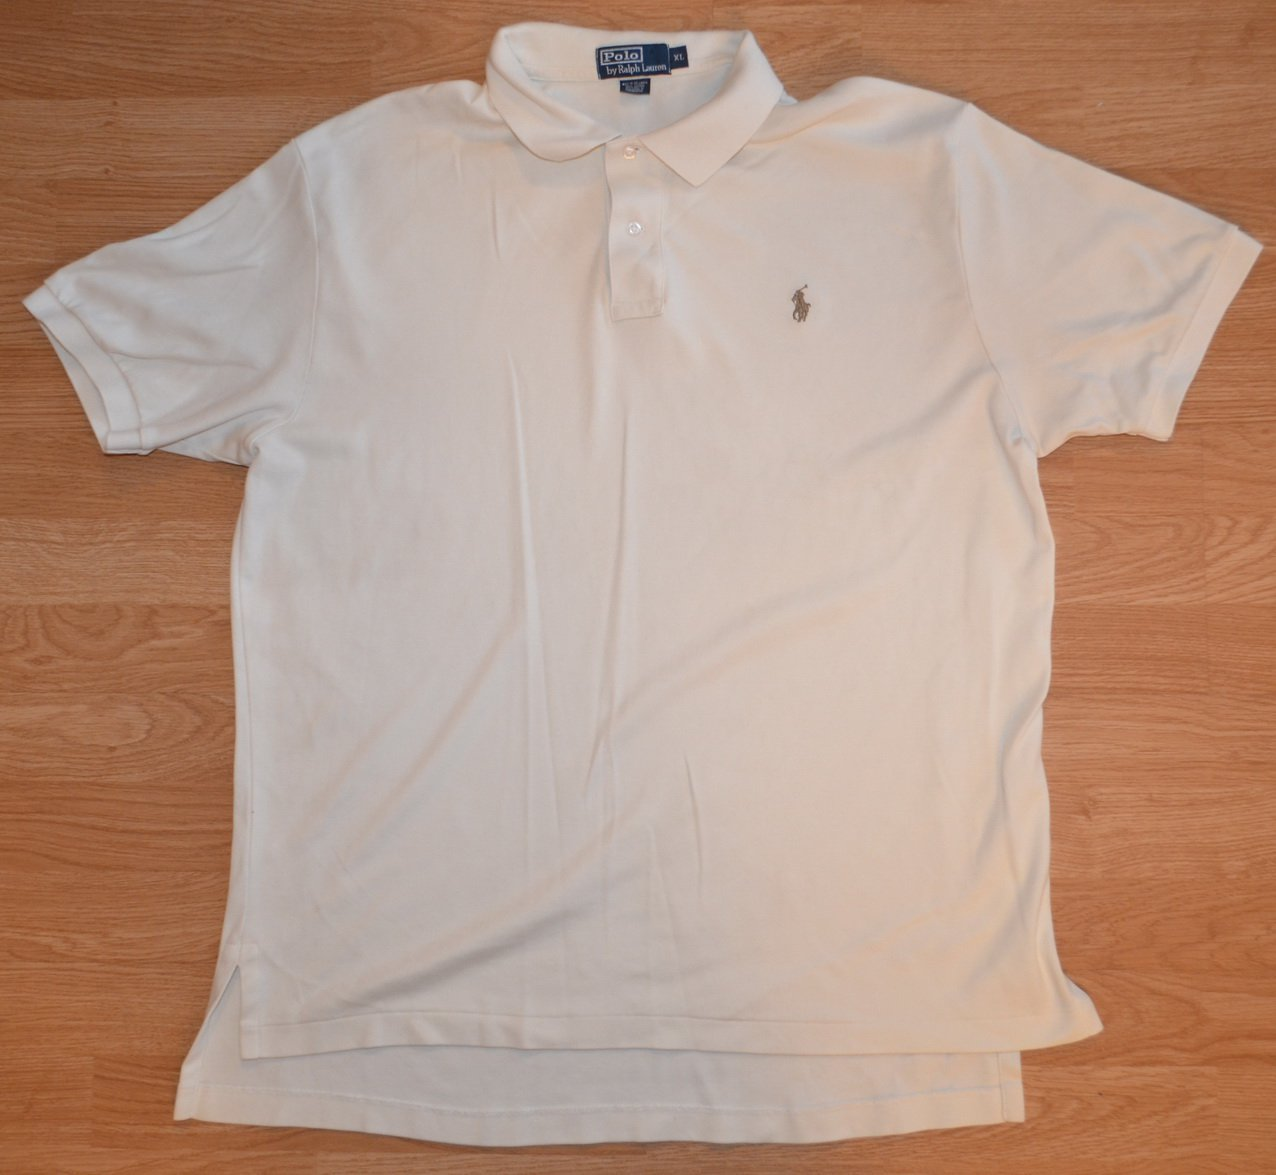 N991 Men's Polo shirt Ralph Lauren Size XL 100% cotton